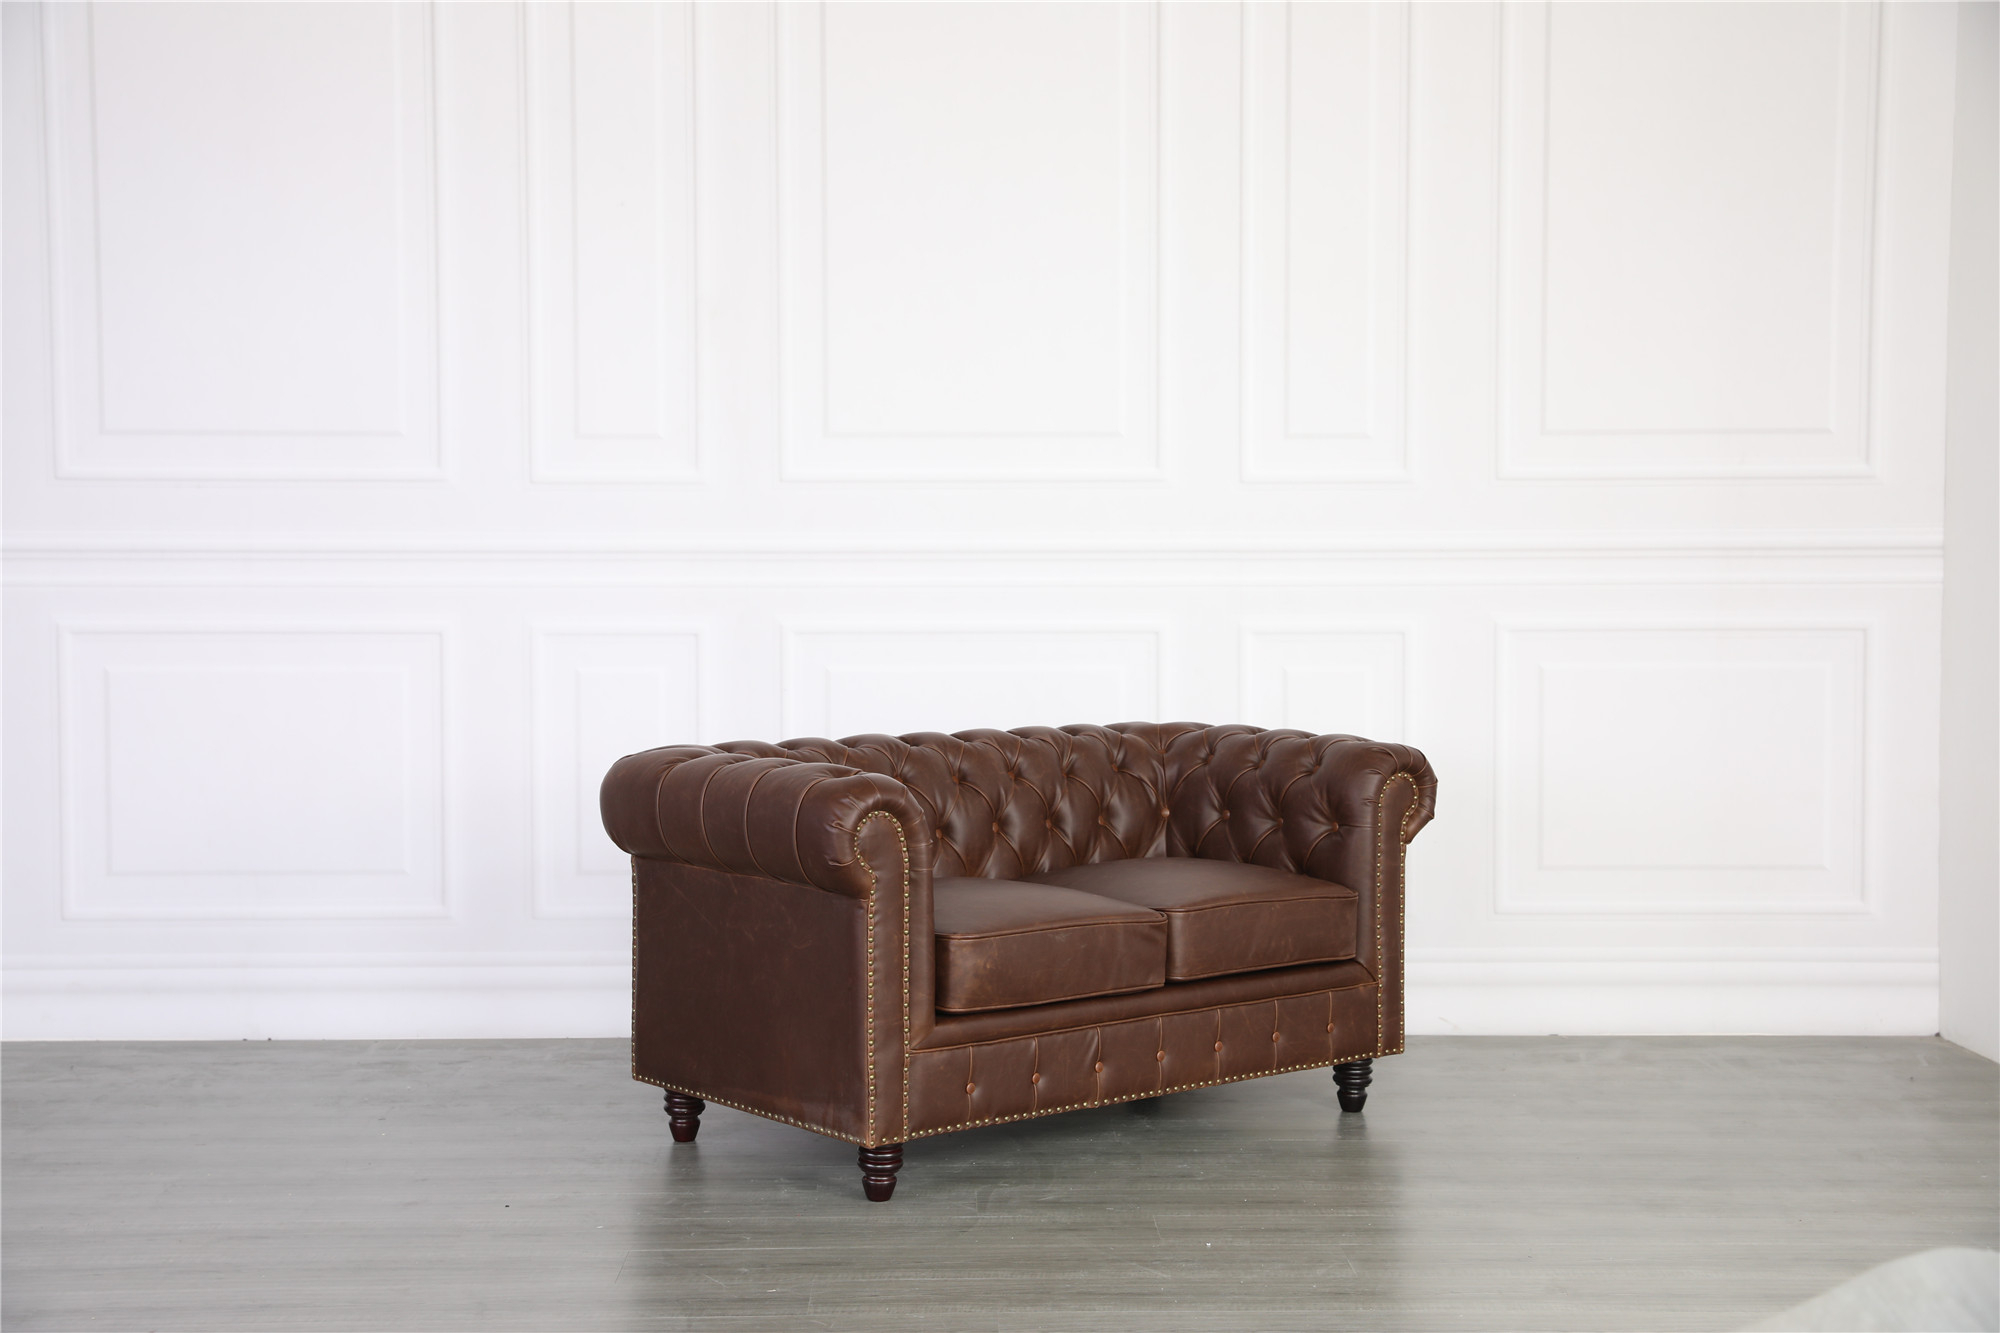 Florence Chesterfield Leather Sofa 2 Seater – Vintage Intended For Florence Leather Sofas (View 11 of 15)